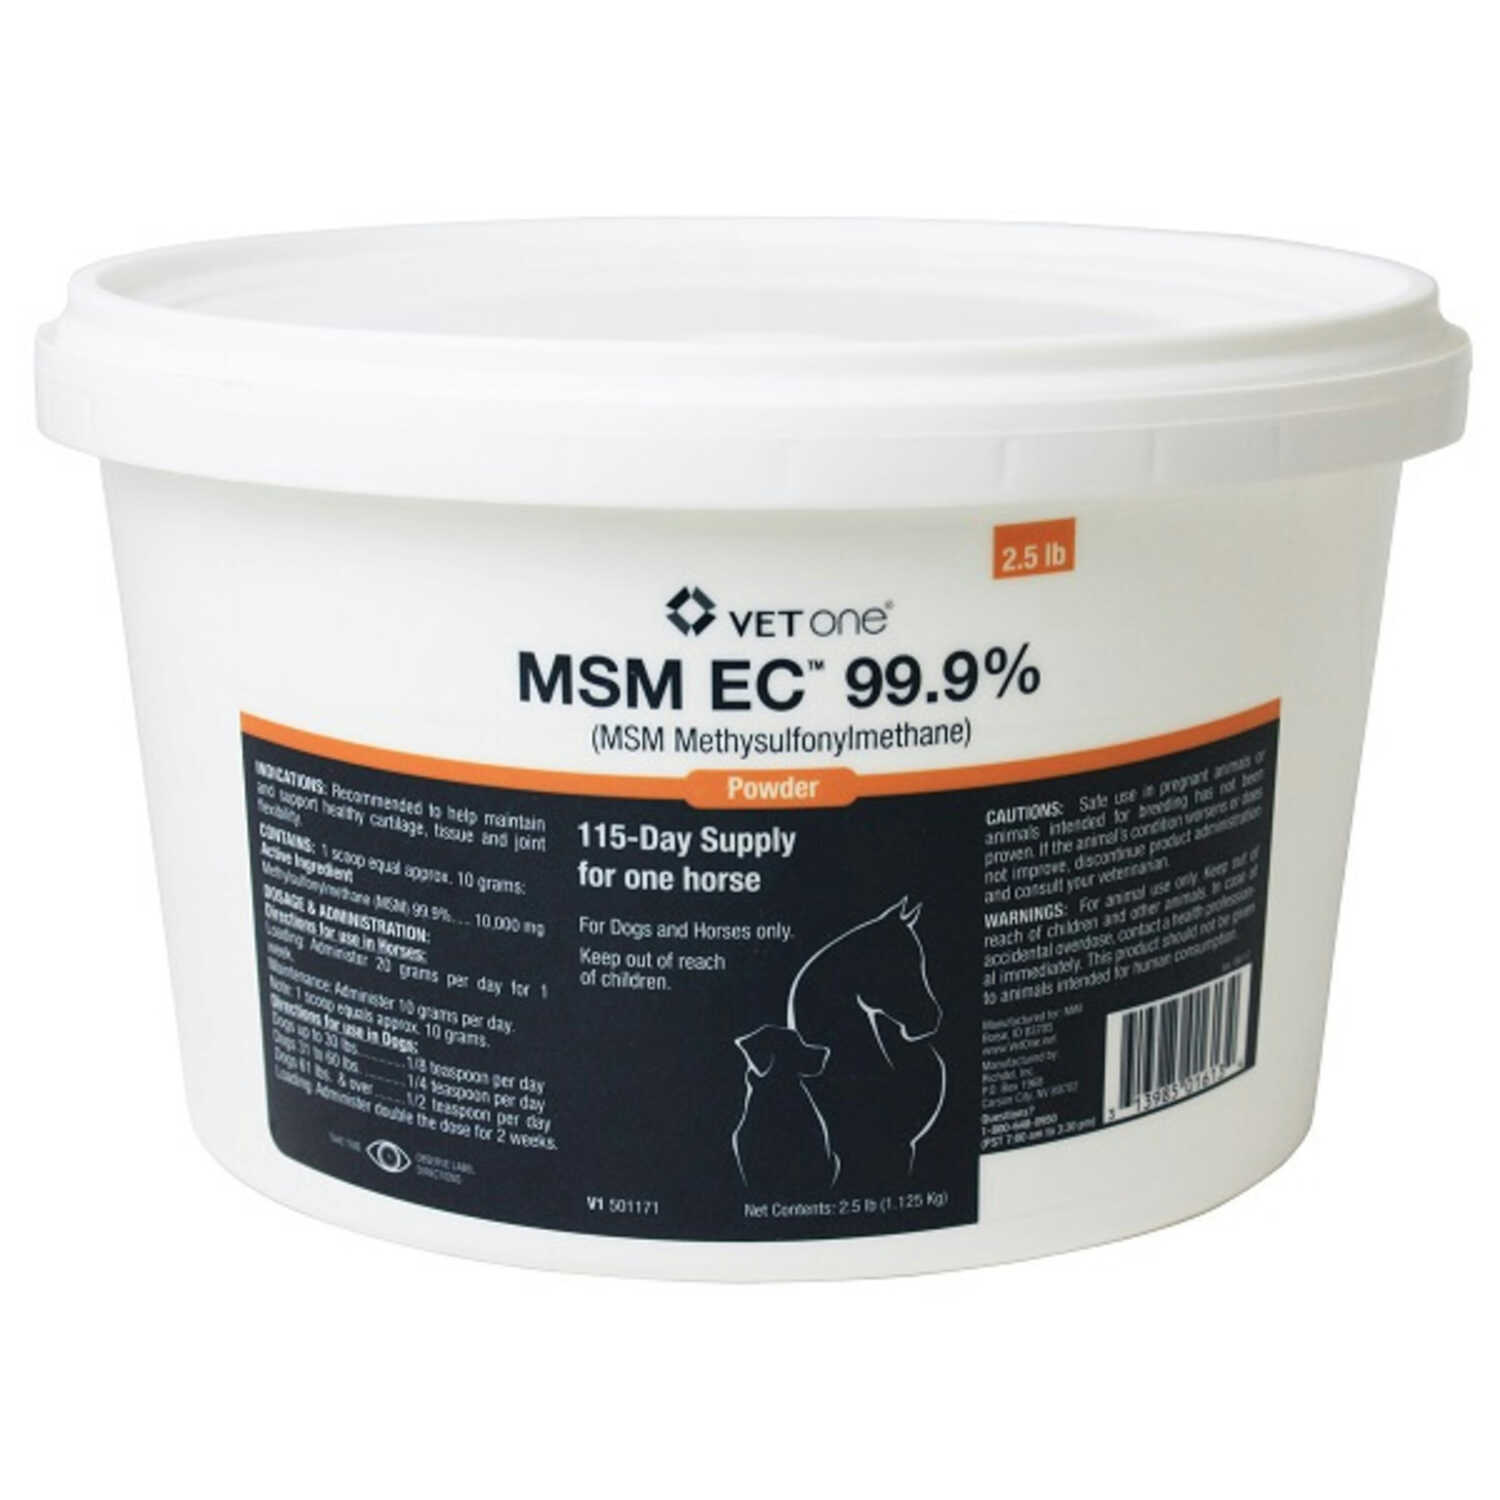 VetOne MSM EC Powder Joint Care For Horse 2 5 lb  - Ace Hardware